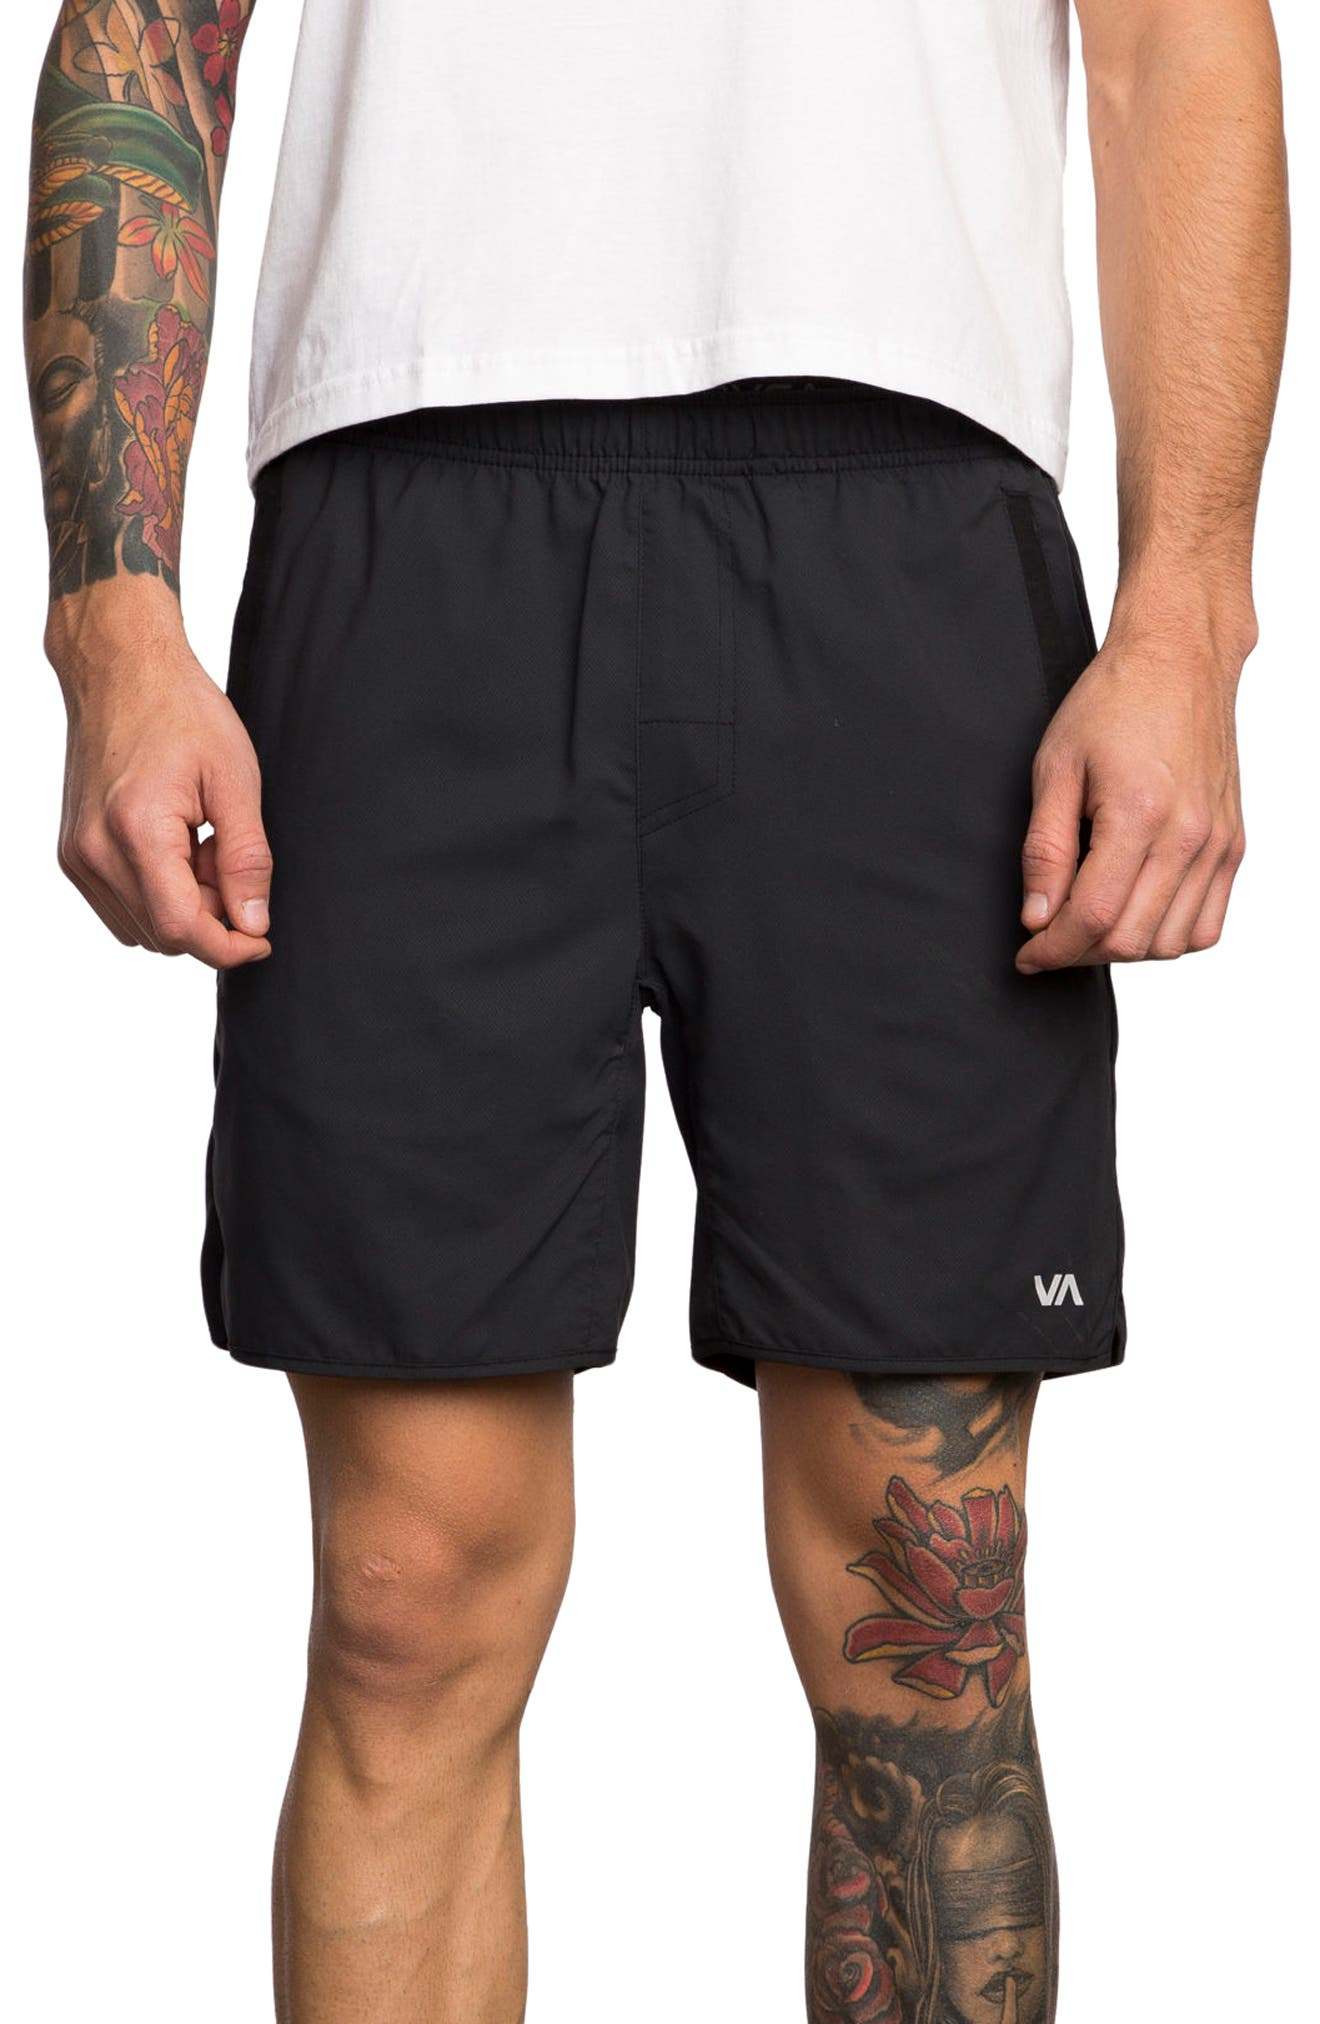 Yogger III Athletic Shorts,                             Main thumbnail 1, color,                             Black